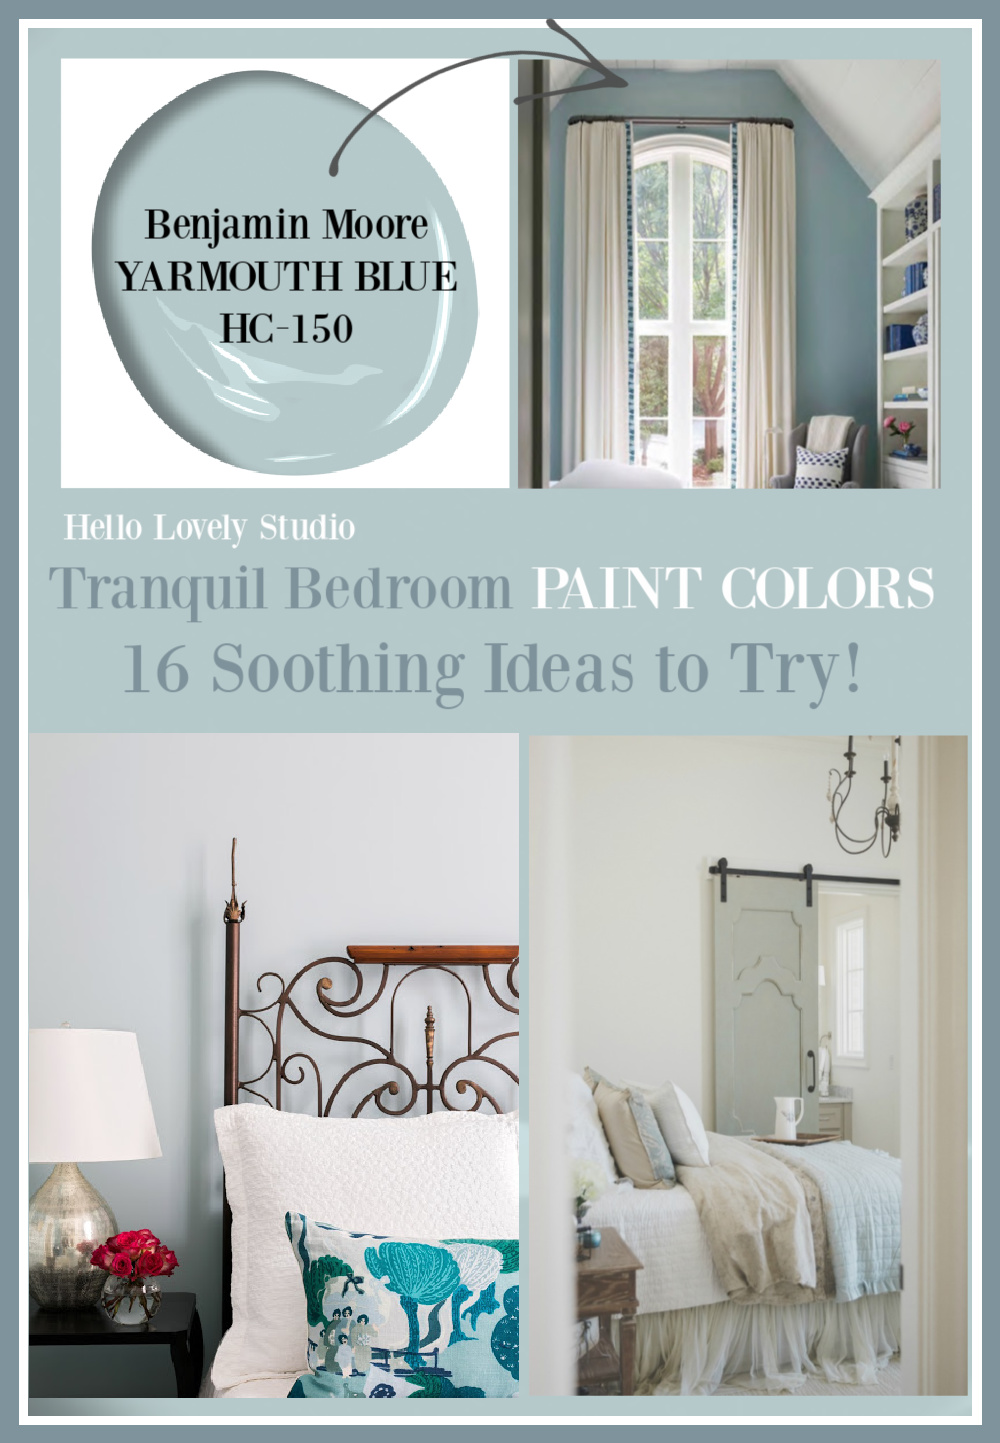 Tranquil bedroom paint colors - 16 soothing ideas to try on Hello Lovely. #paintcolors #tranquilpaintcolors #bedroompaintcolors